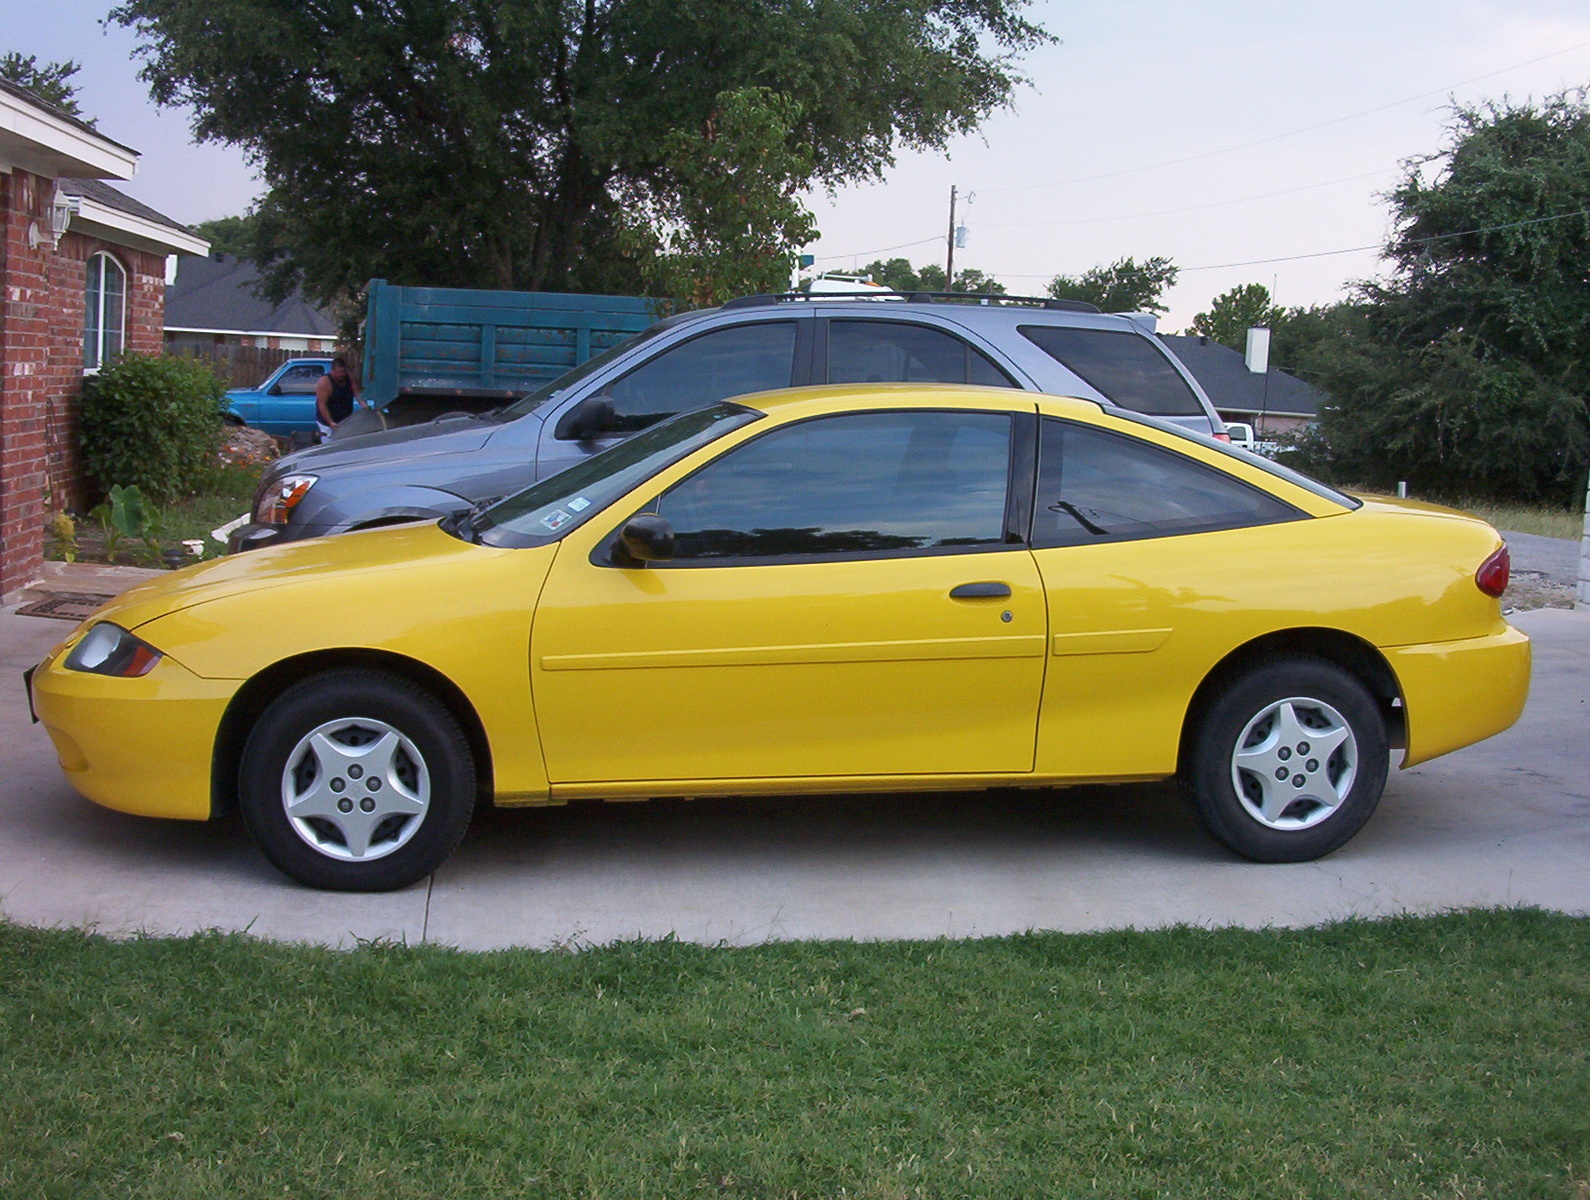 Cavalier 97 chevy cavalier specs : 2003 Chevrolet Cavalier coupe (j) – pictures, information and ...